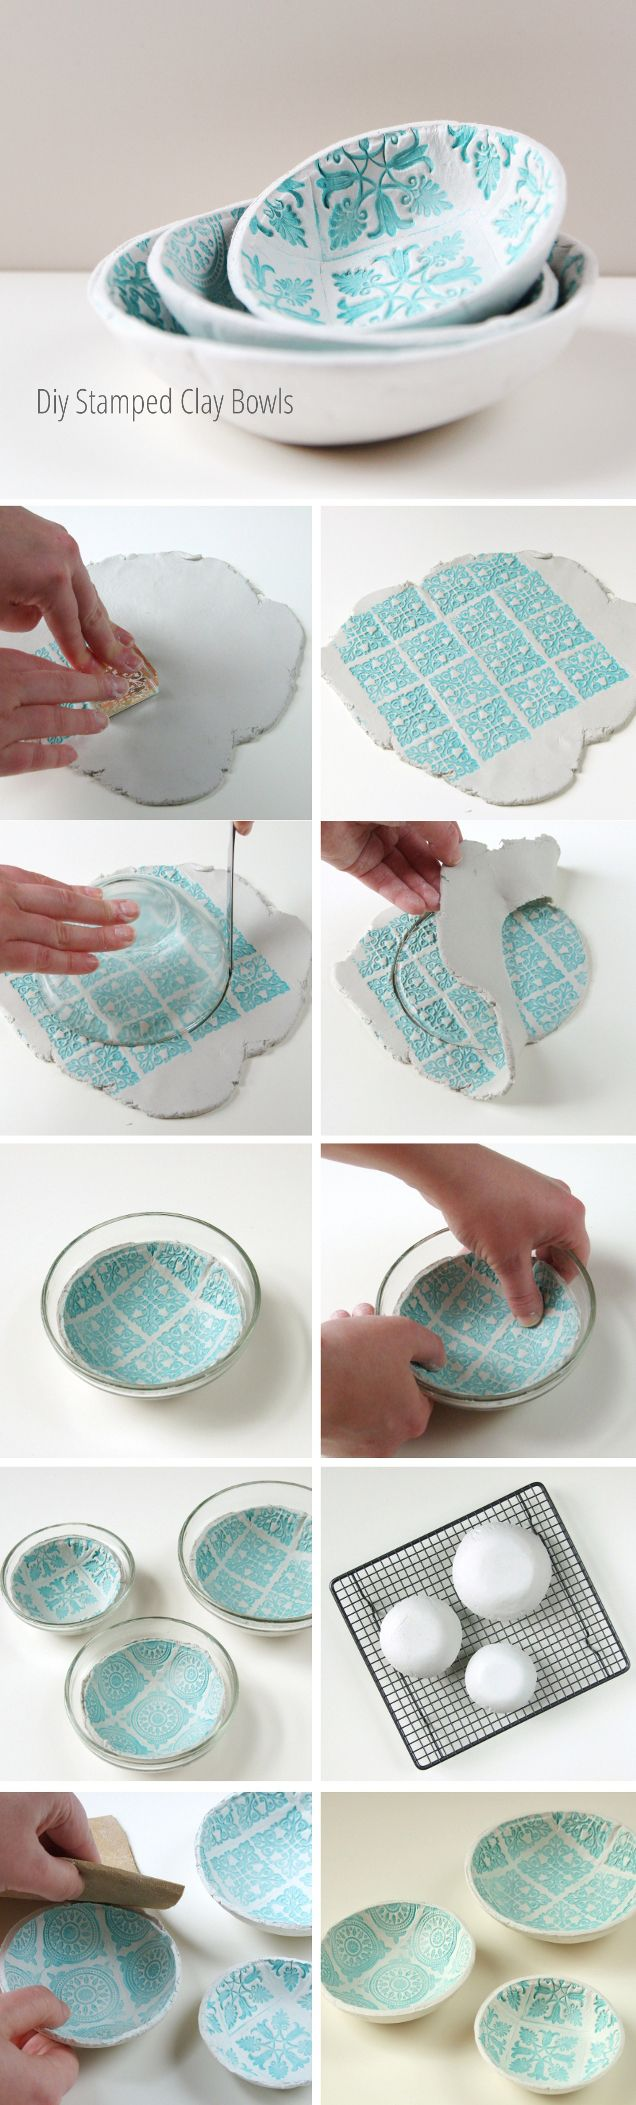 DIY stamped clay bowls. Izzy has so much air dry clay this would be fun to do!